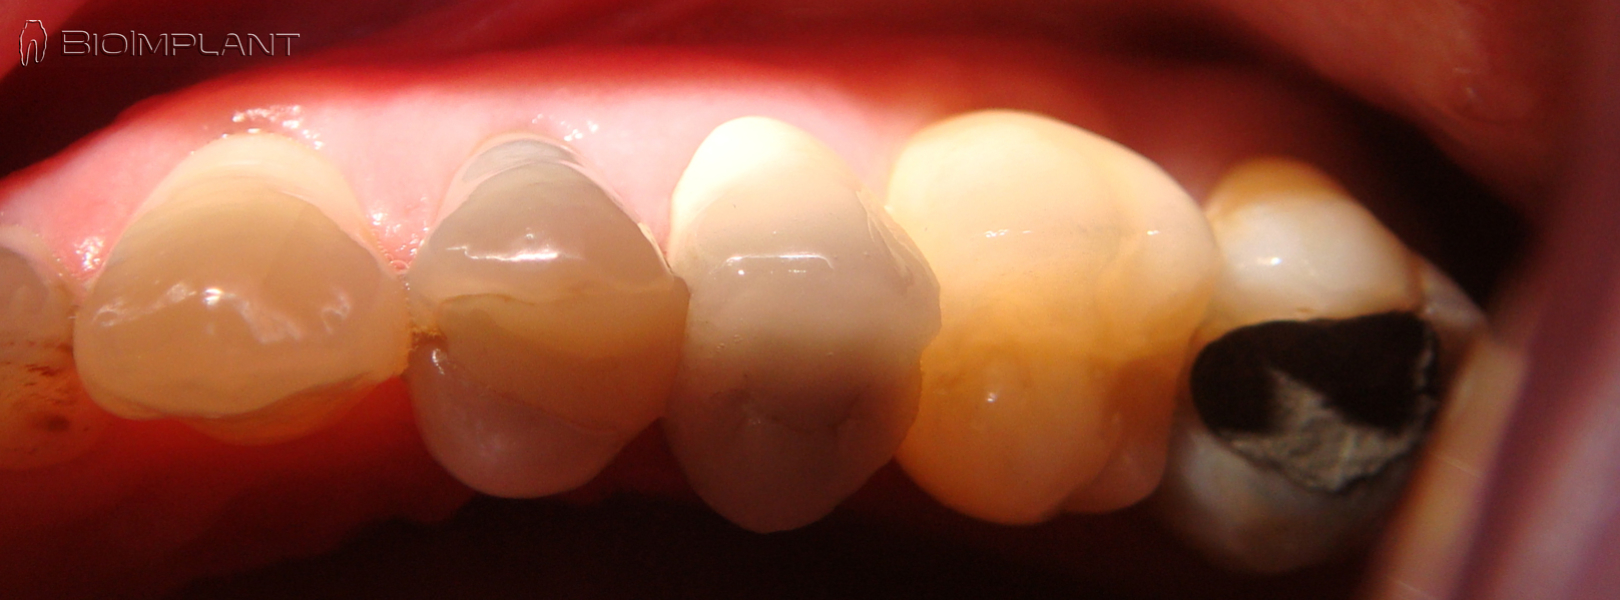 transluceny-fully-metal-free-ceramic-immediate-upper-molar-implant-anatomical